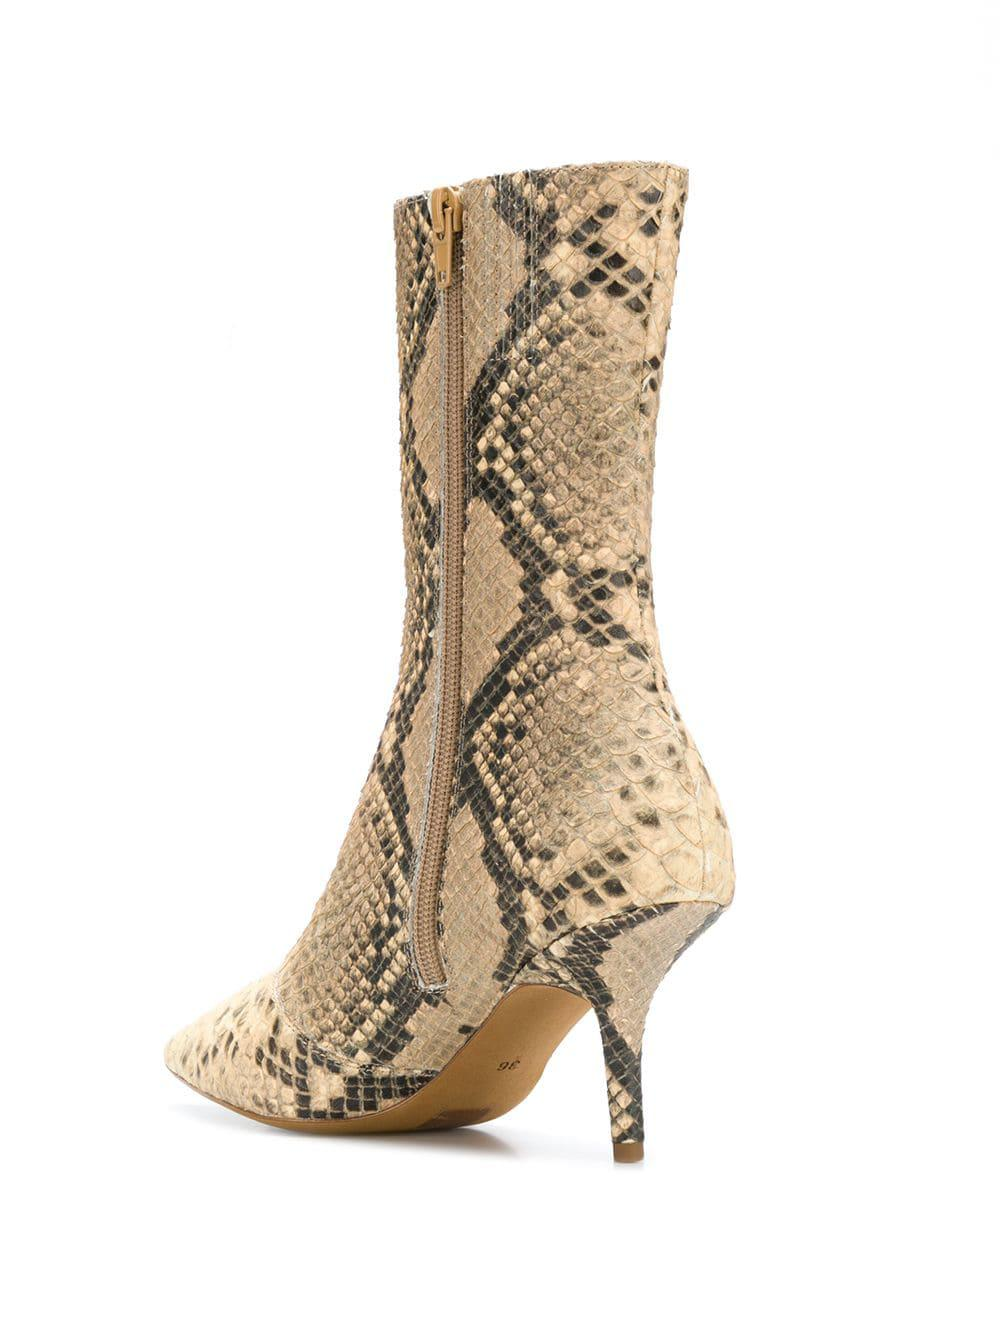 6241c8dd357 Yeezy Snake Pattern Boots in Natural - Lyst